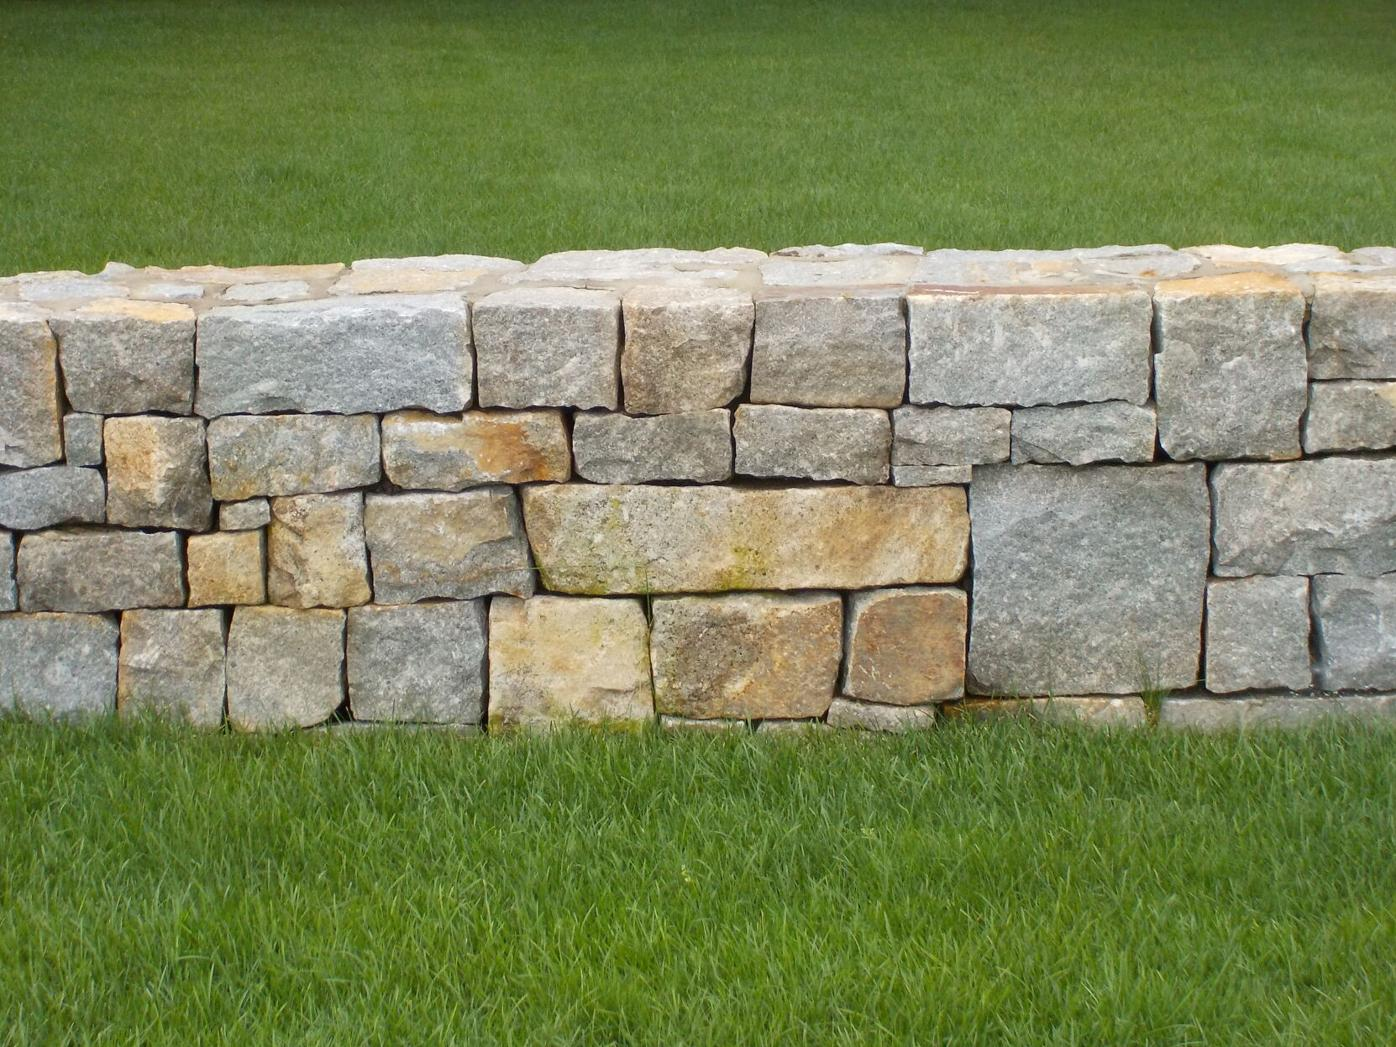 Stone walls are difficult to build well, but should last forever.JPG